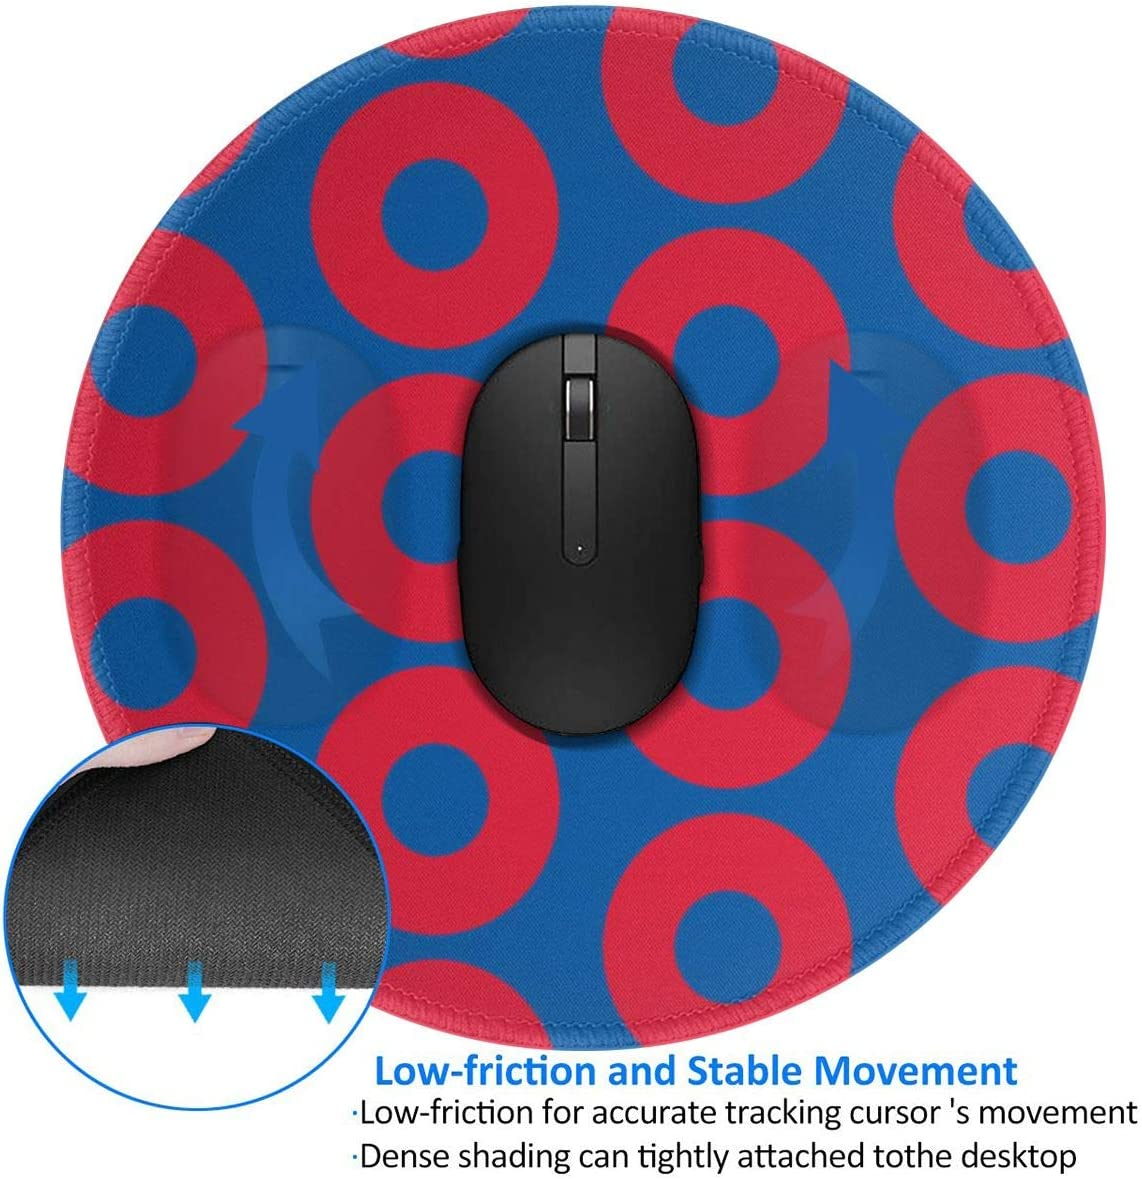 Phish Circles Round Gaming Rubber Base Mouse Pad with Stitches Edges for PC,Computers,Laptops